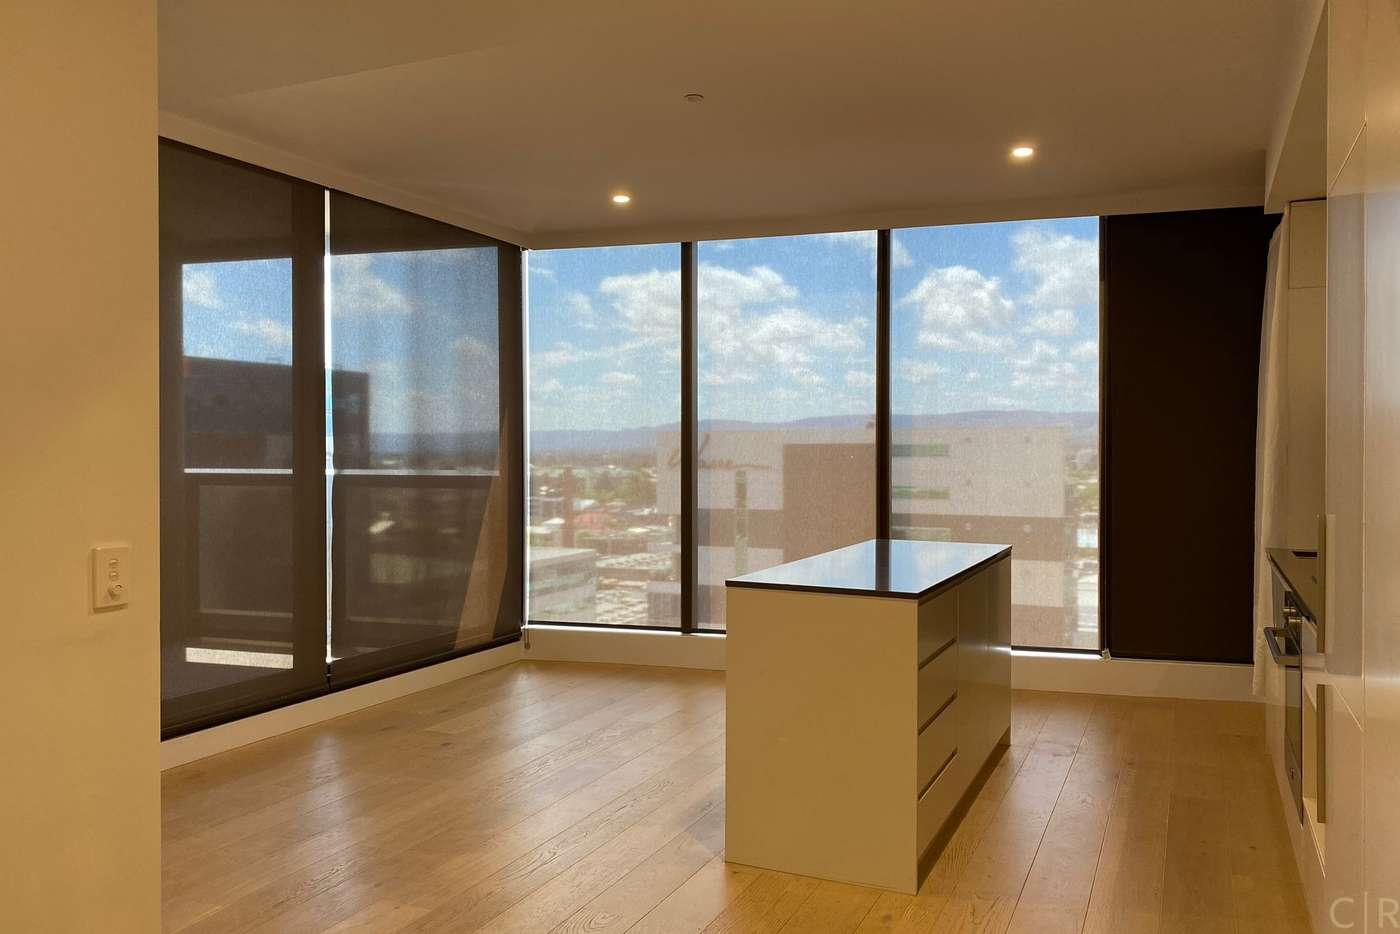 Sixth view of Homely apartment listing, 1206/421 King William Street, Adelaide SA 5000